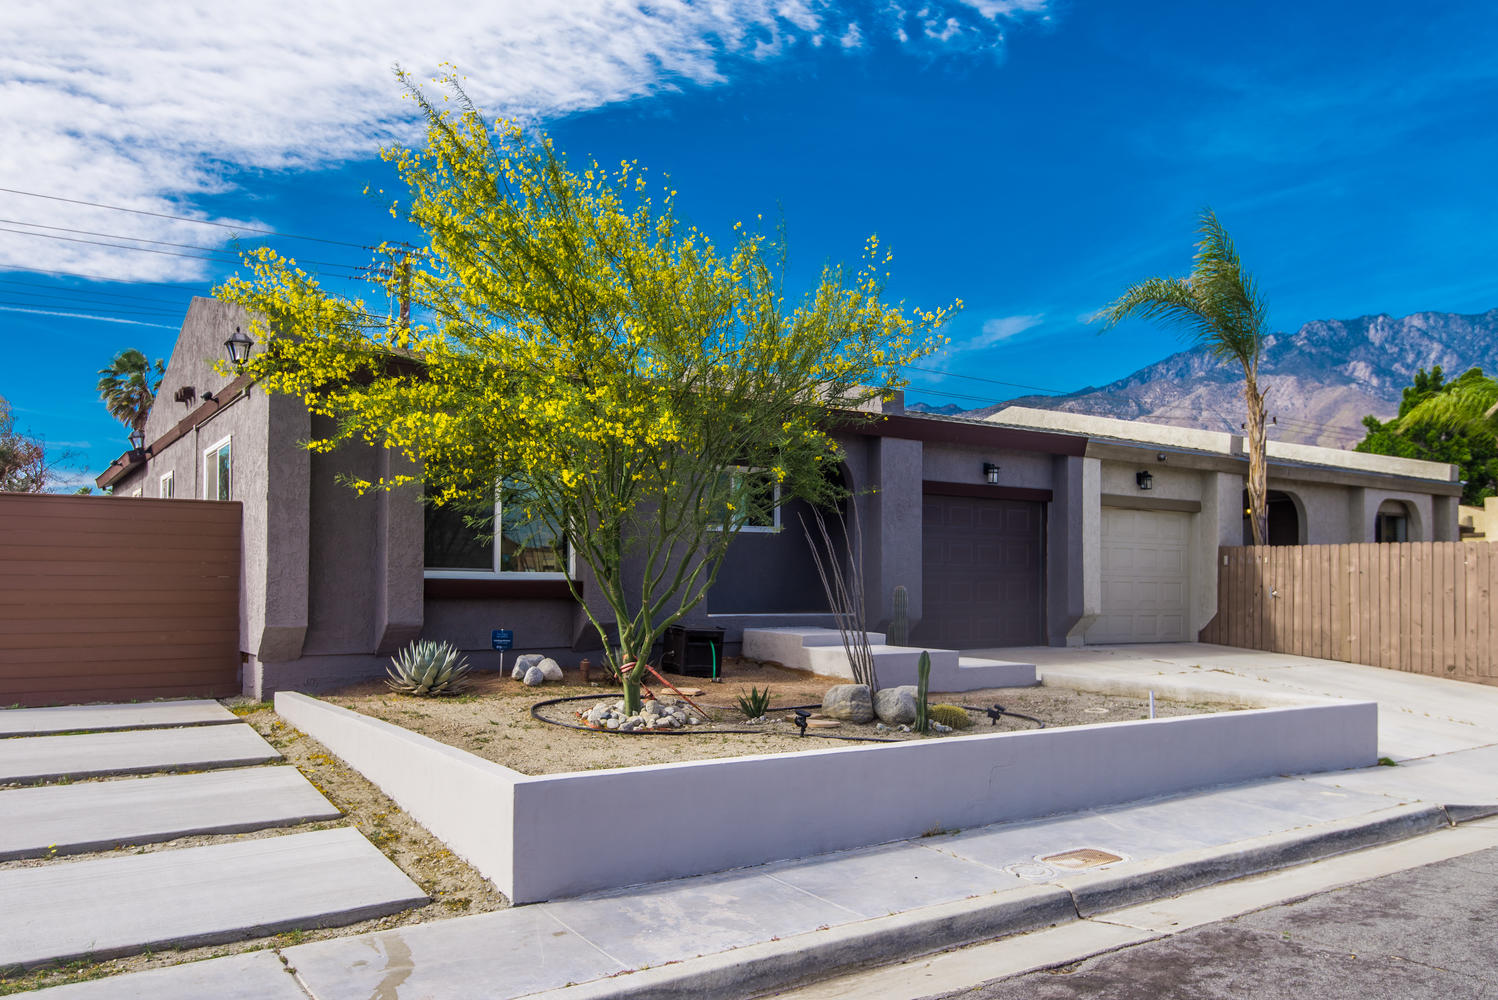 Single Family Home for Sale at 1581 E Twin Star Palm Springs, California, 92262 United States